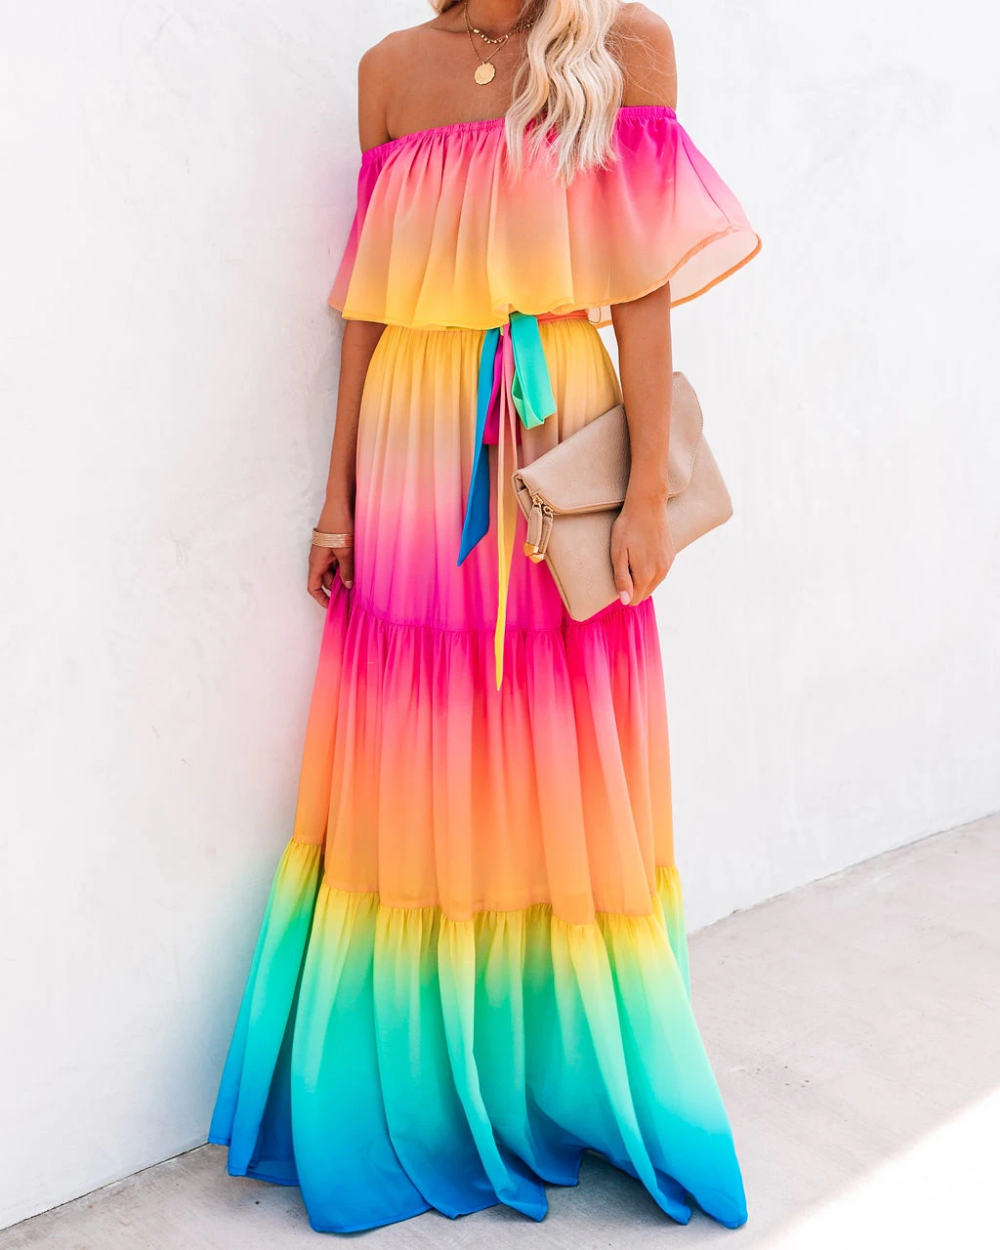 Model Is Wearing A Size Small Height Is 5 7 Bust Is 32 Waist 25 And Hips 30 Relaxed Fit Self Lining Maxi Dress Rainbow Dress Women S A Line Dresses [ 1250 x 1000 Pixel ]